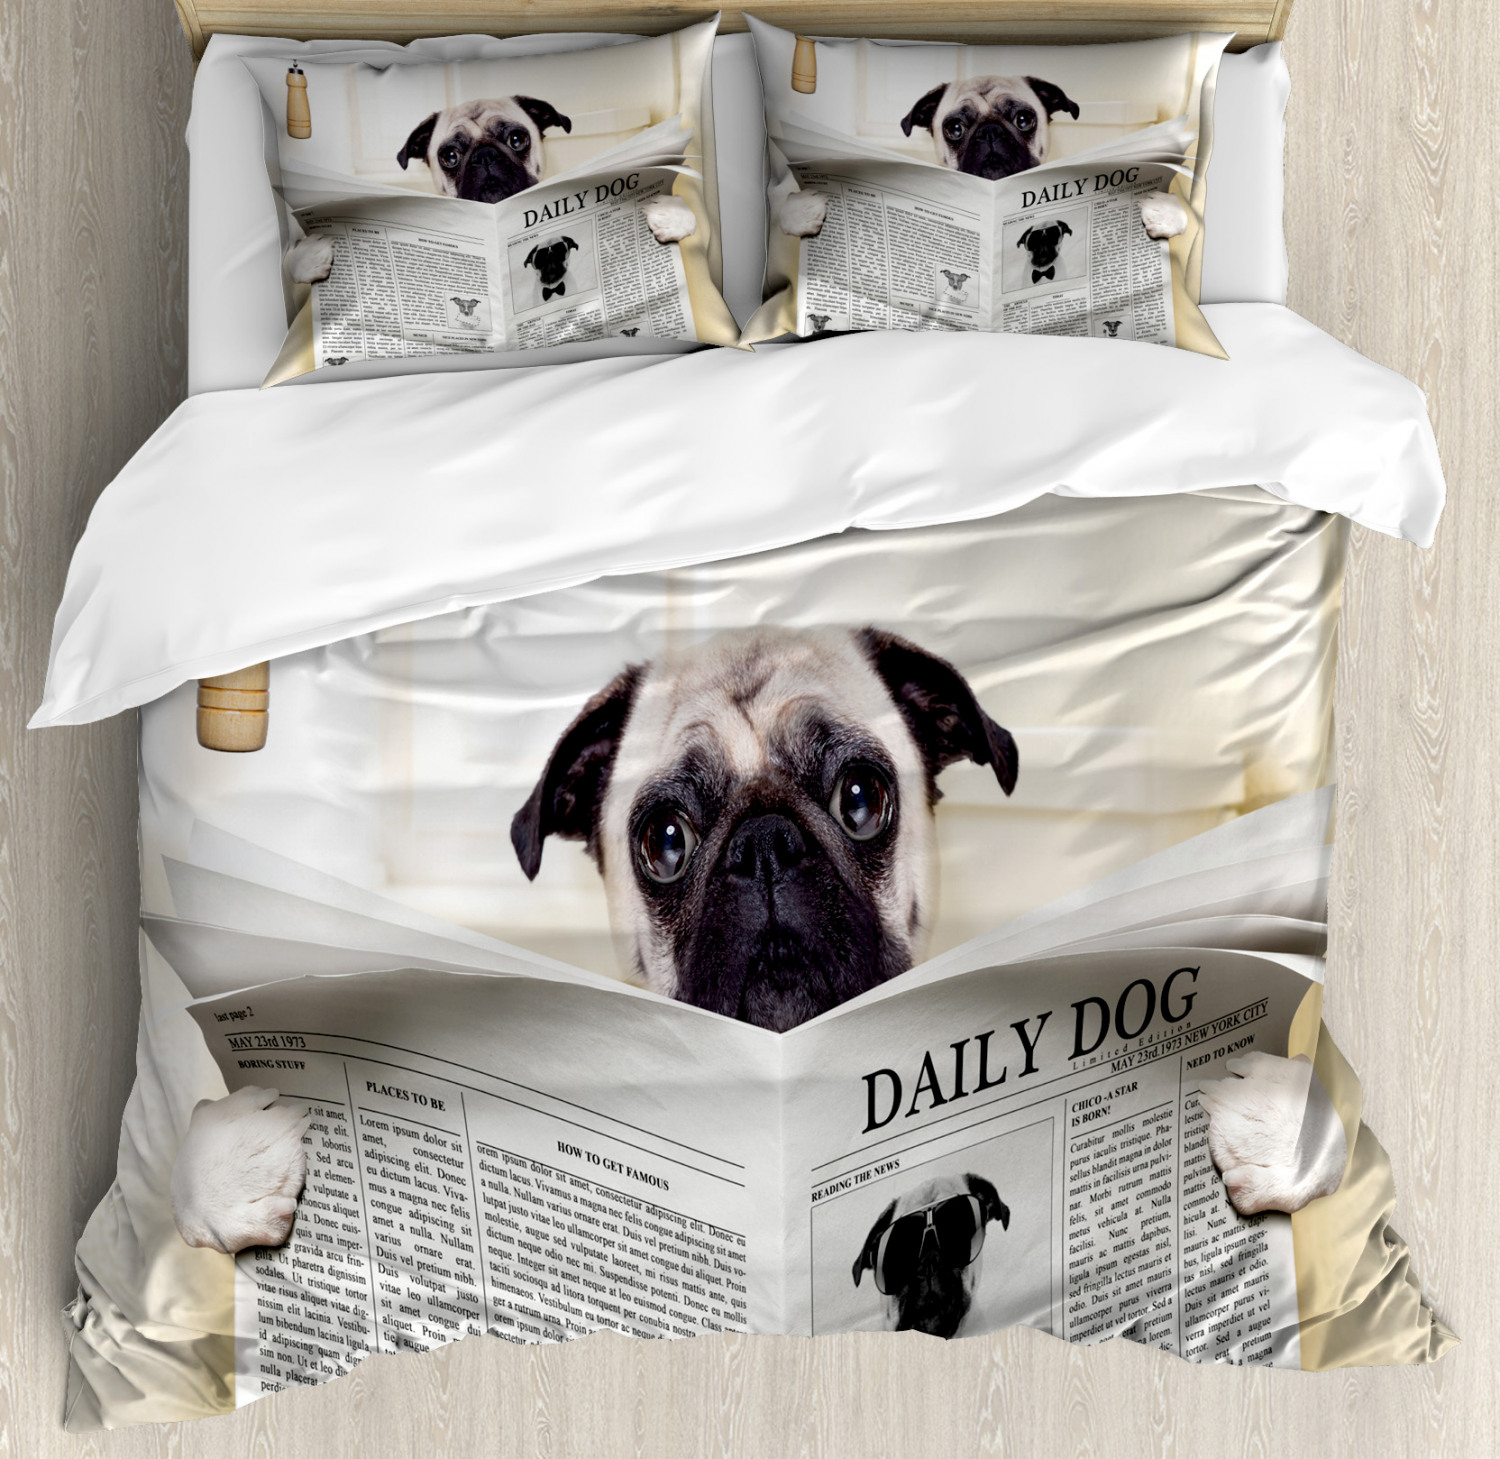 Pug Duvet Cover Set with Pillow Shams Puppy Reading Newspape